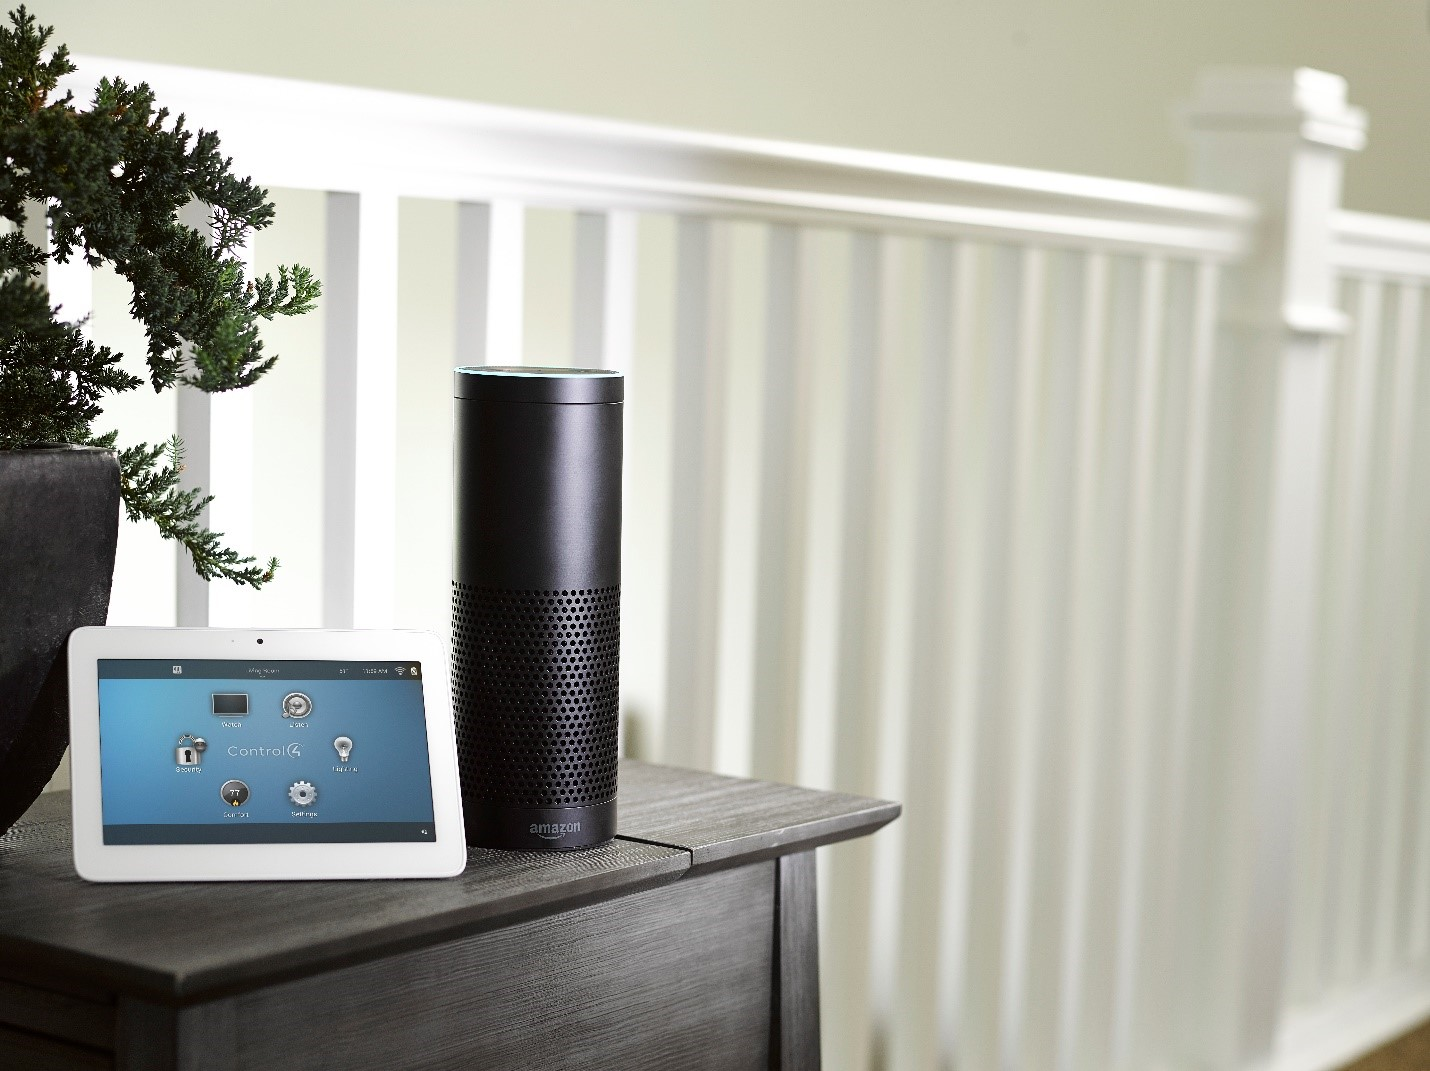 How You Can Use Voice Control to Manage Your Smart Home System